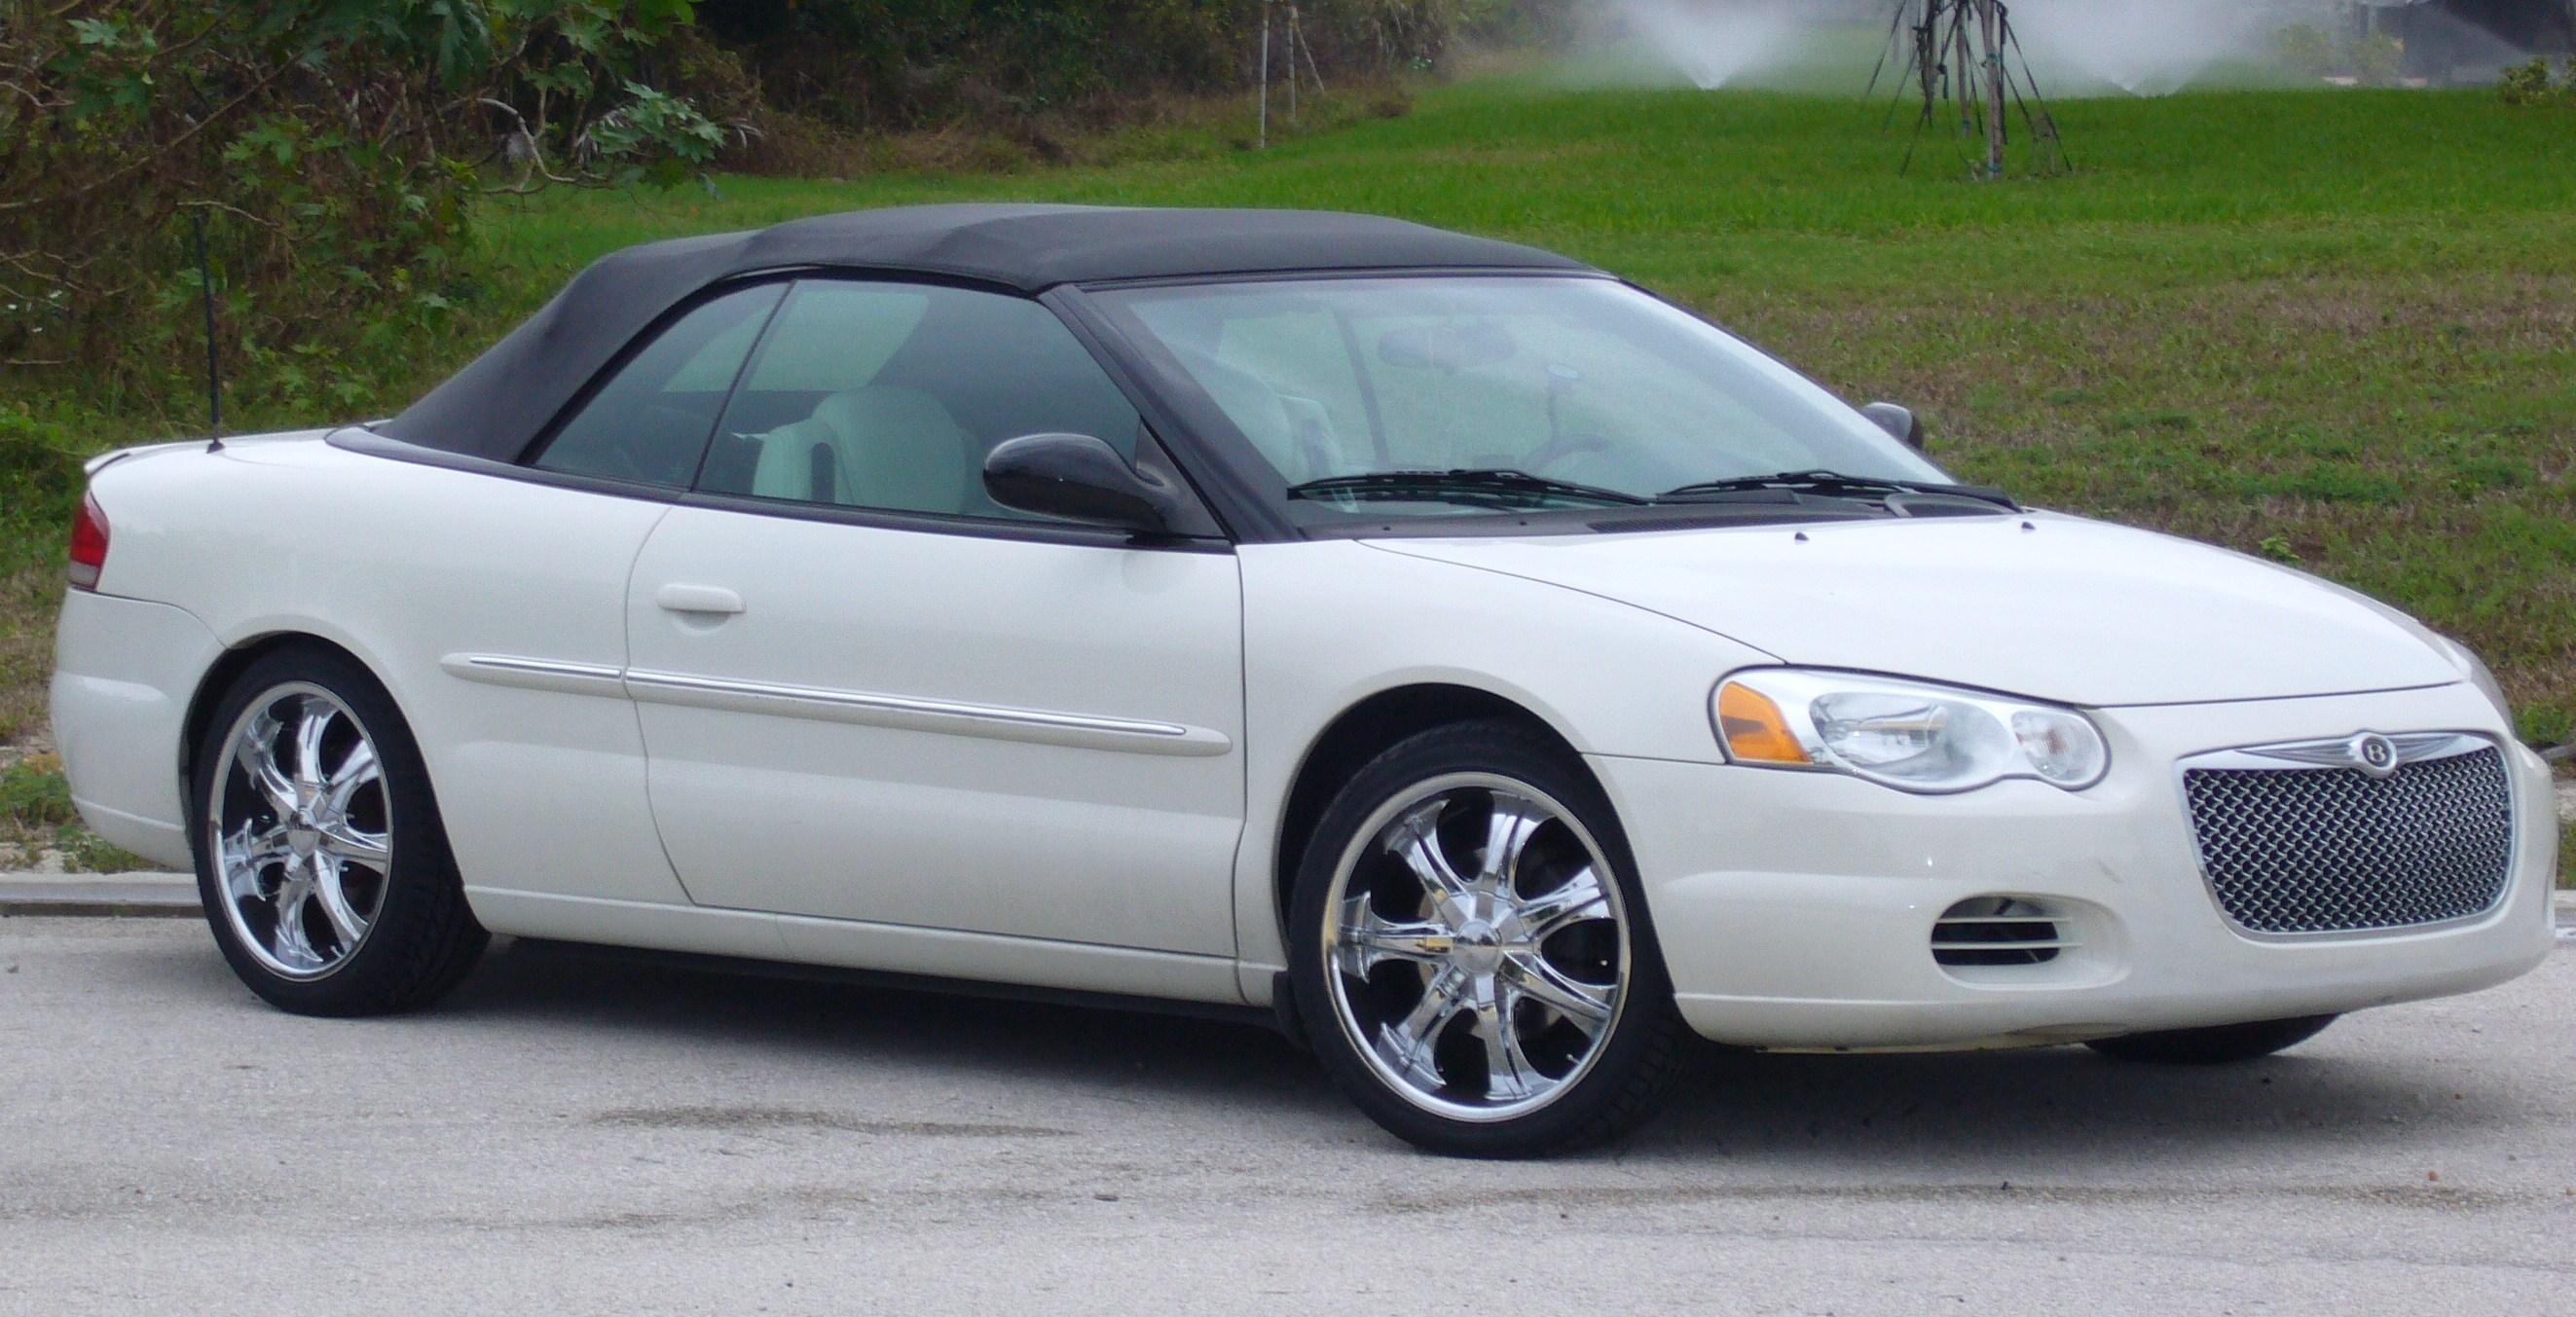 2004 Chrysler Sebring #7